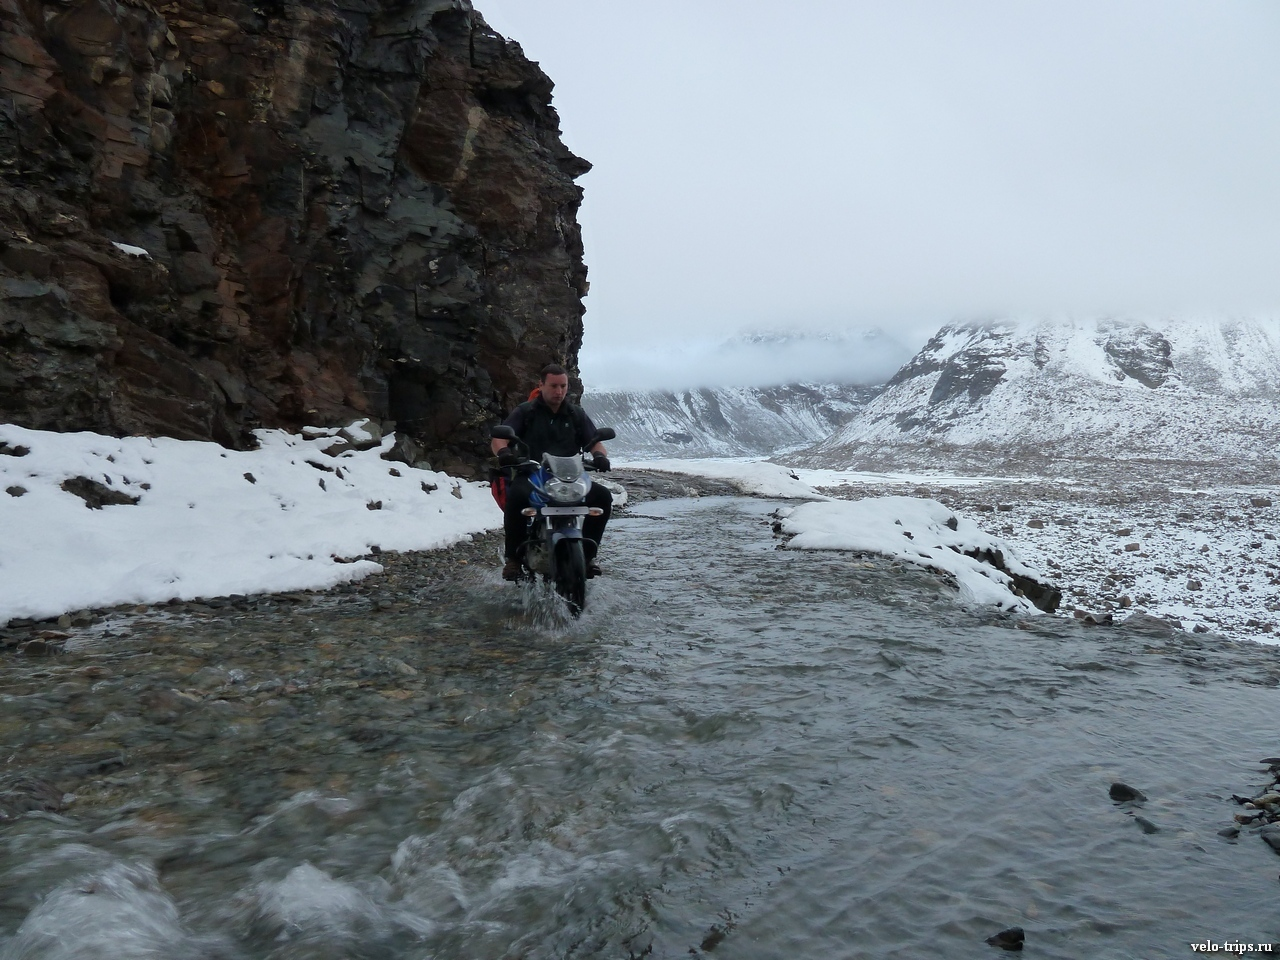 On motorcycle via water streams  in Chandra valley, Himalayas